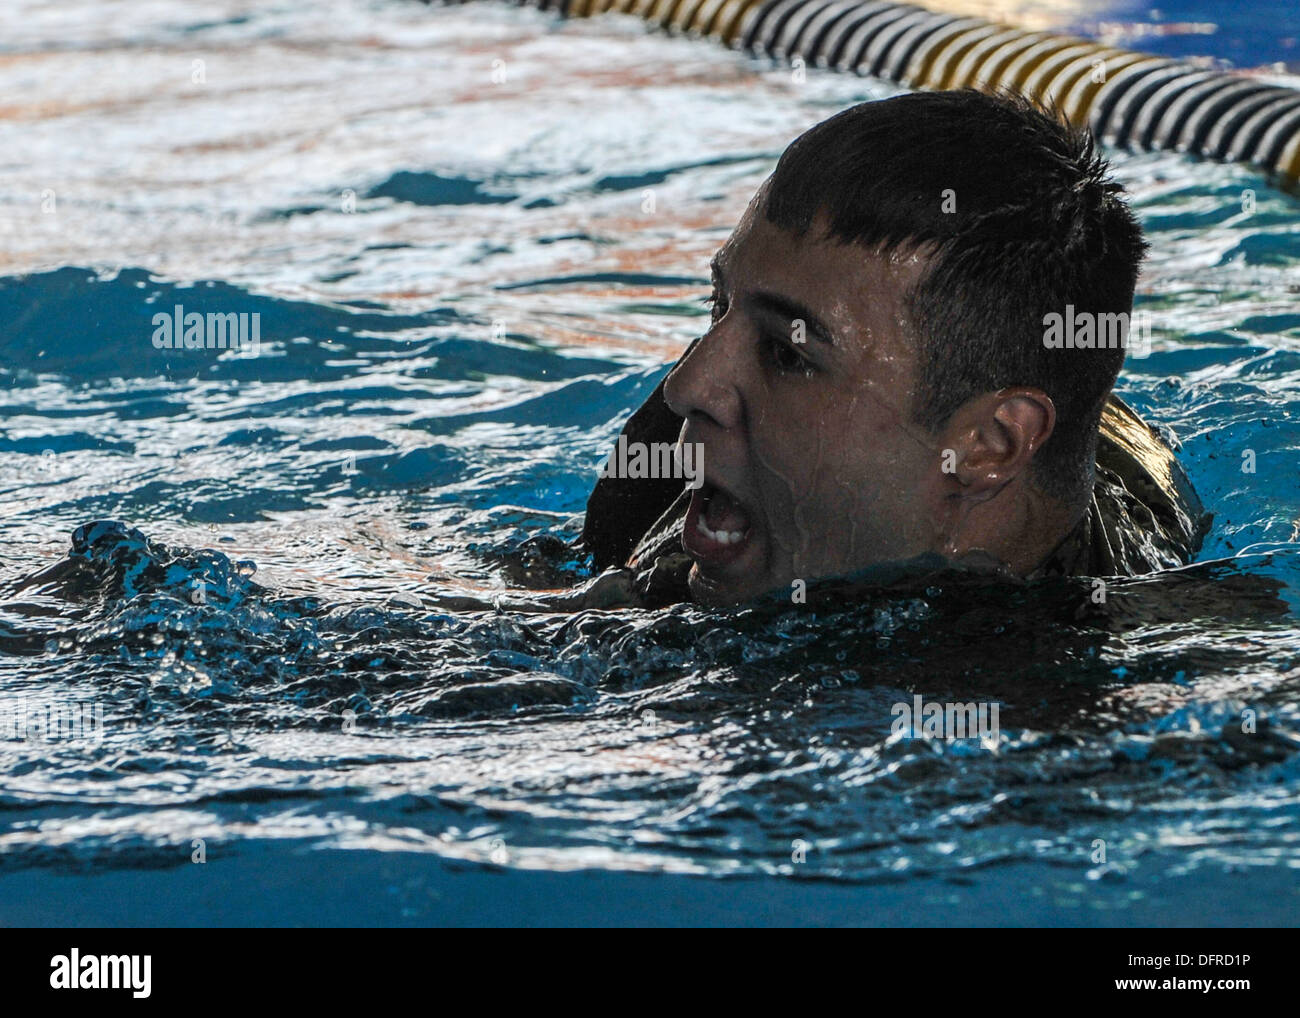 Navy Hospital Corpsman 3rd Class Javier Uvina swims during a relay swim race. Competitors swam one lap of the pool while wearin - Stock Image